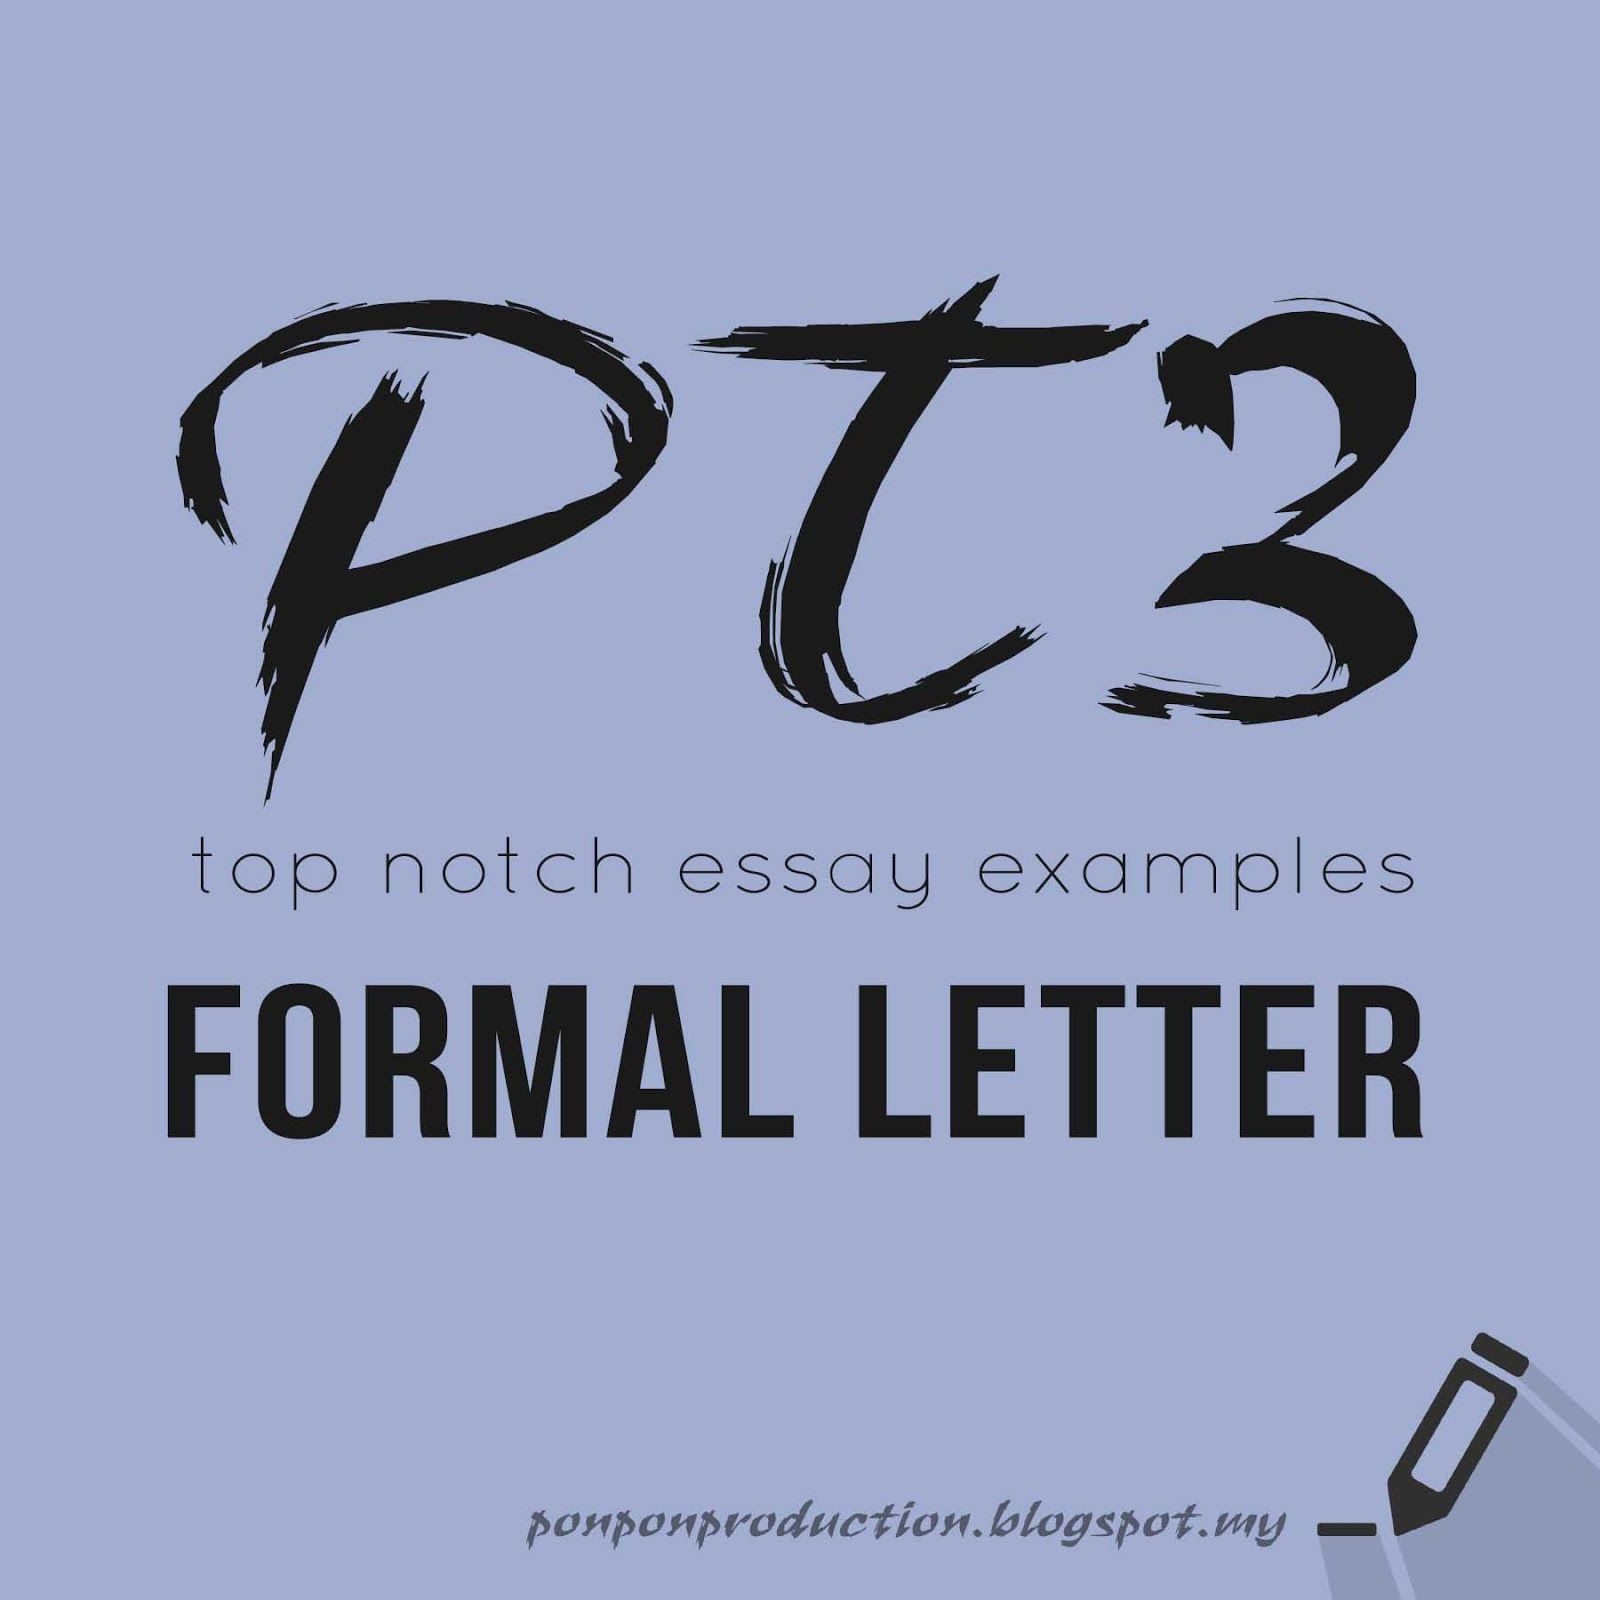 Pt3 Formal Letter Essay Example Pt3 And Spm Pinterest Essay